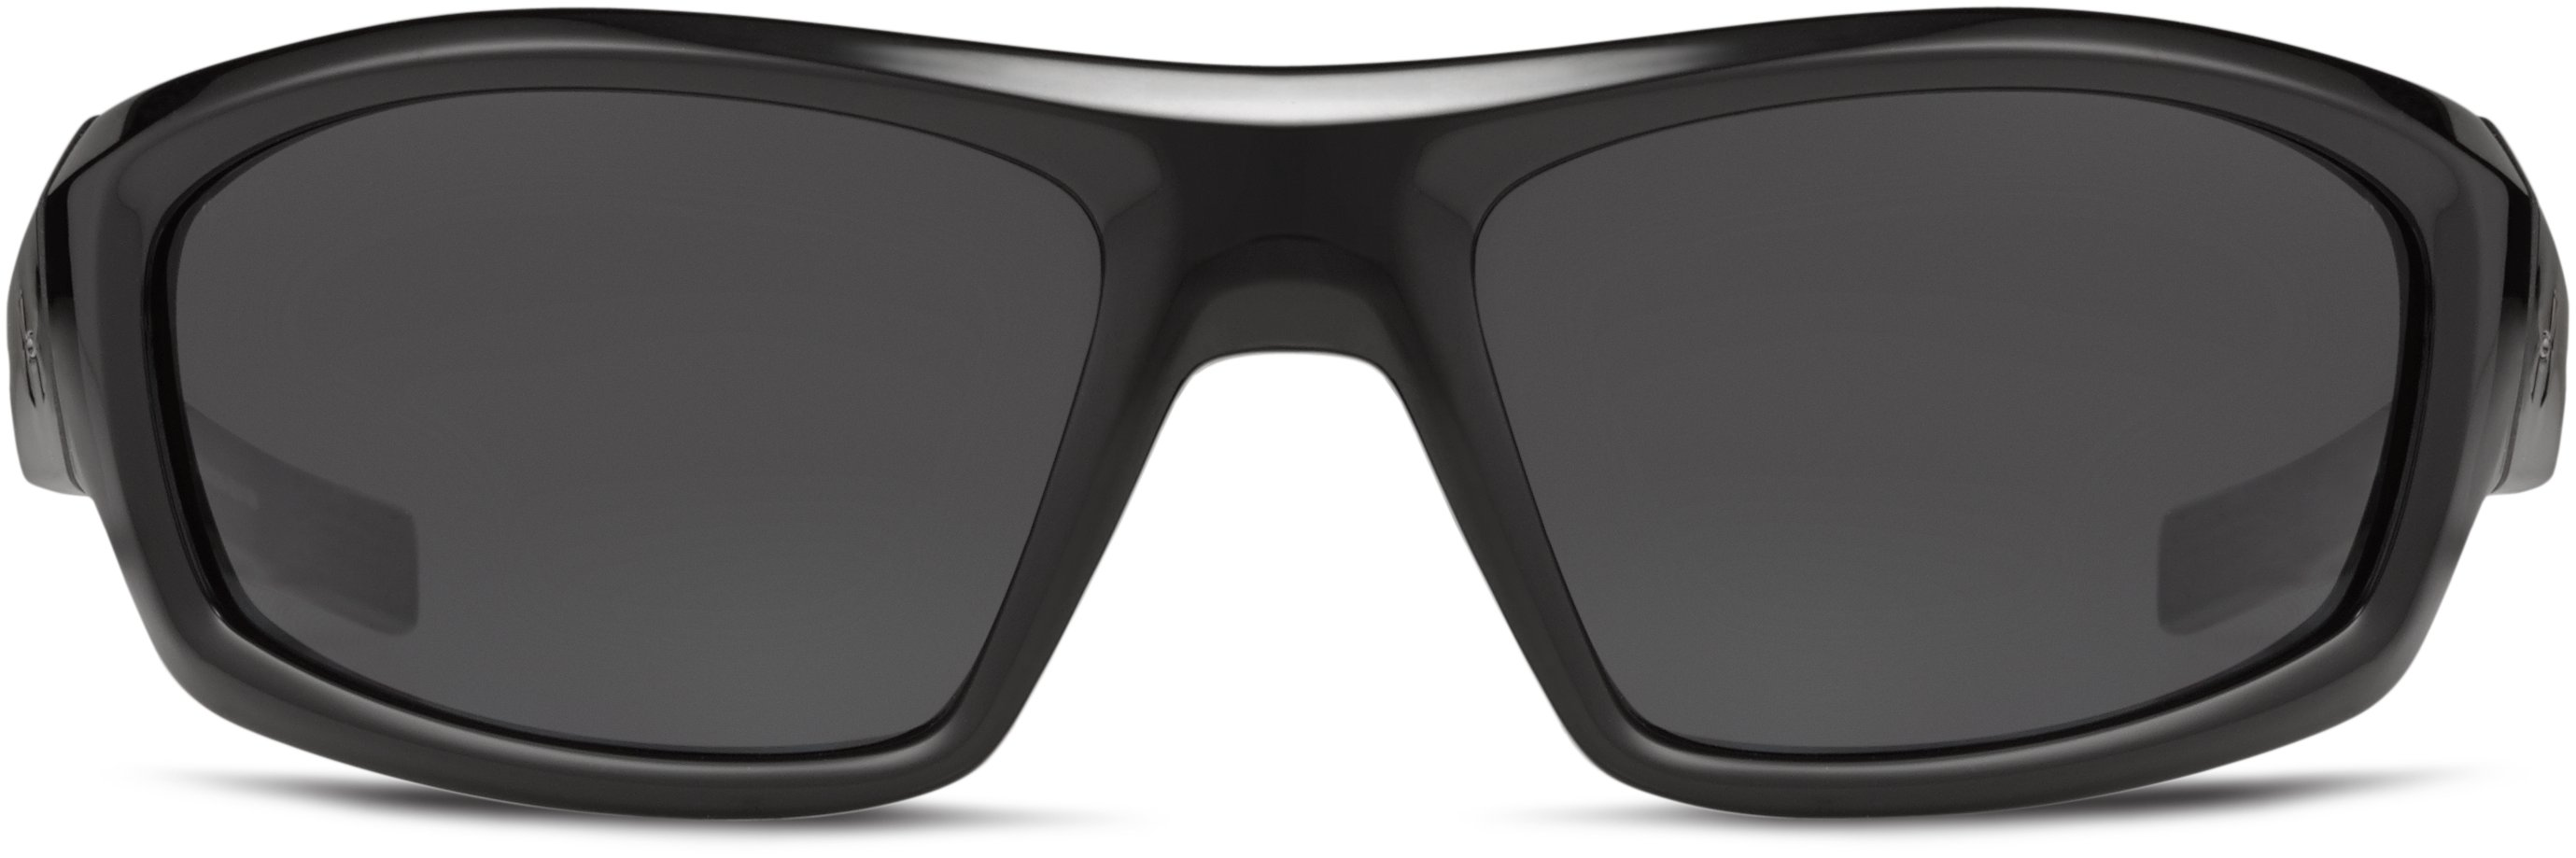 UA Power Sunglasses, Shiny Black